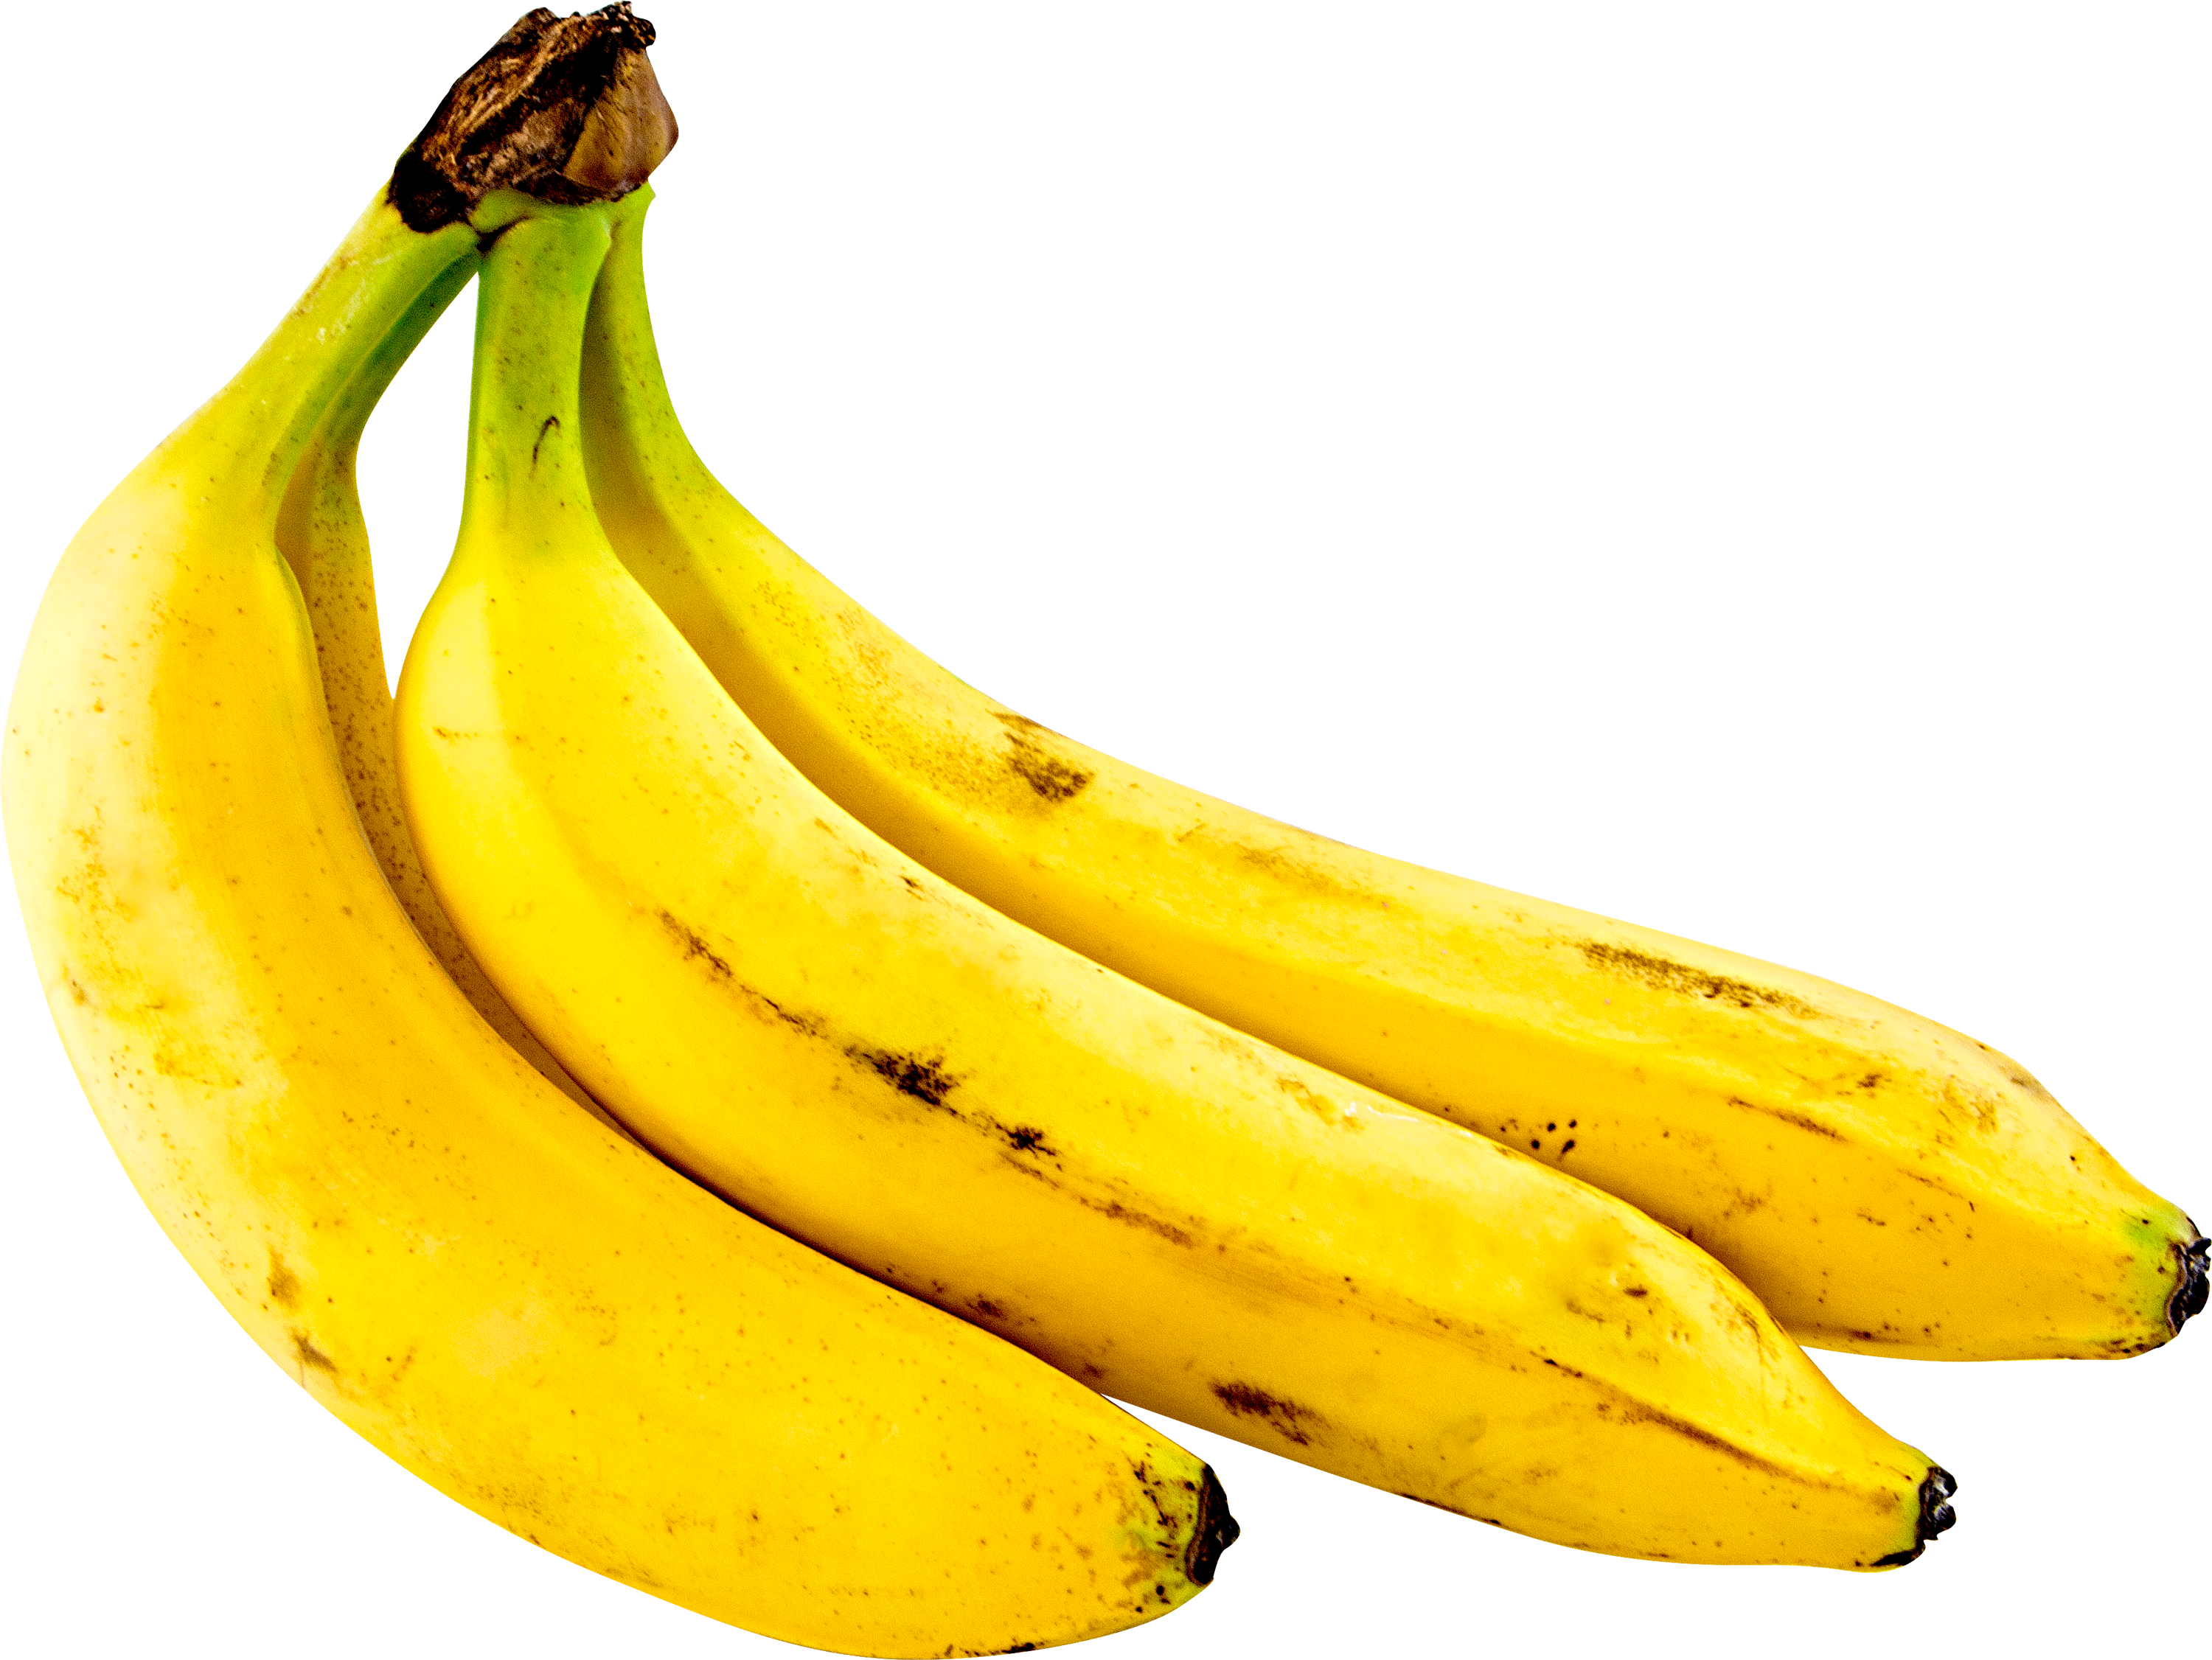 bananas png - photo #6